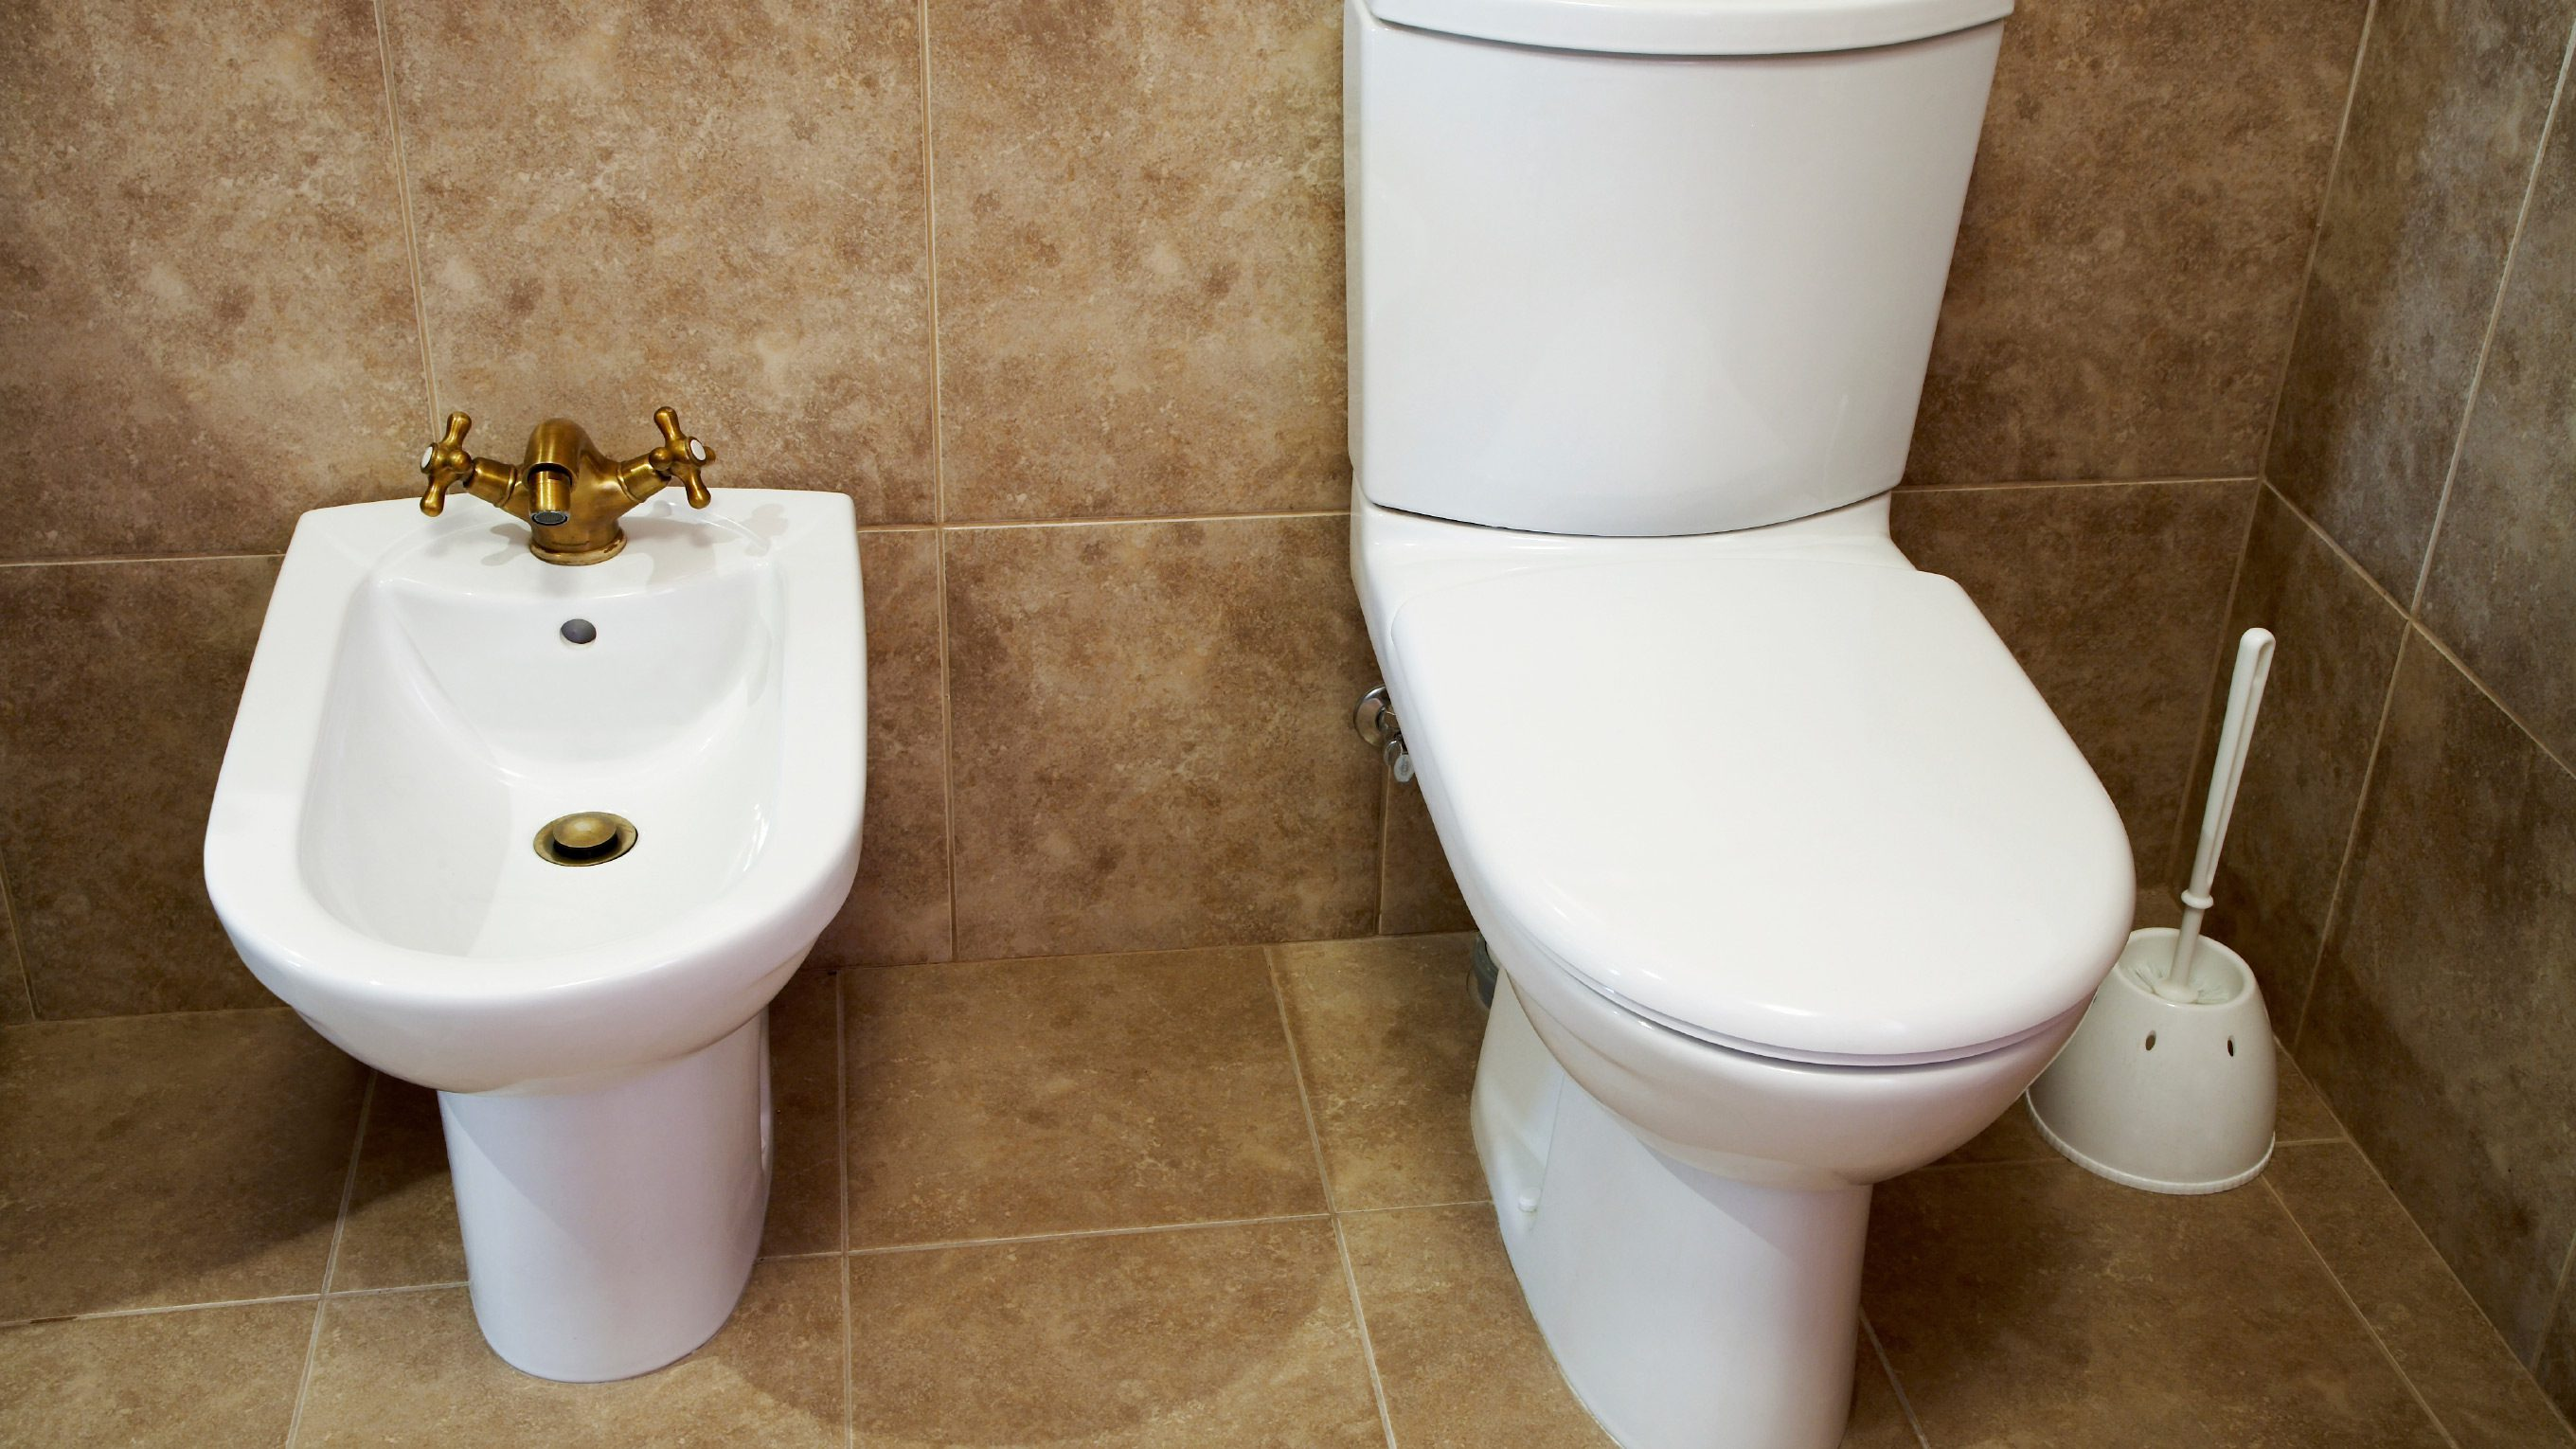 Bidet on the left